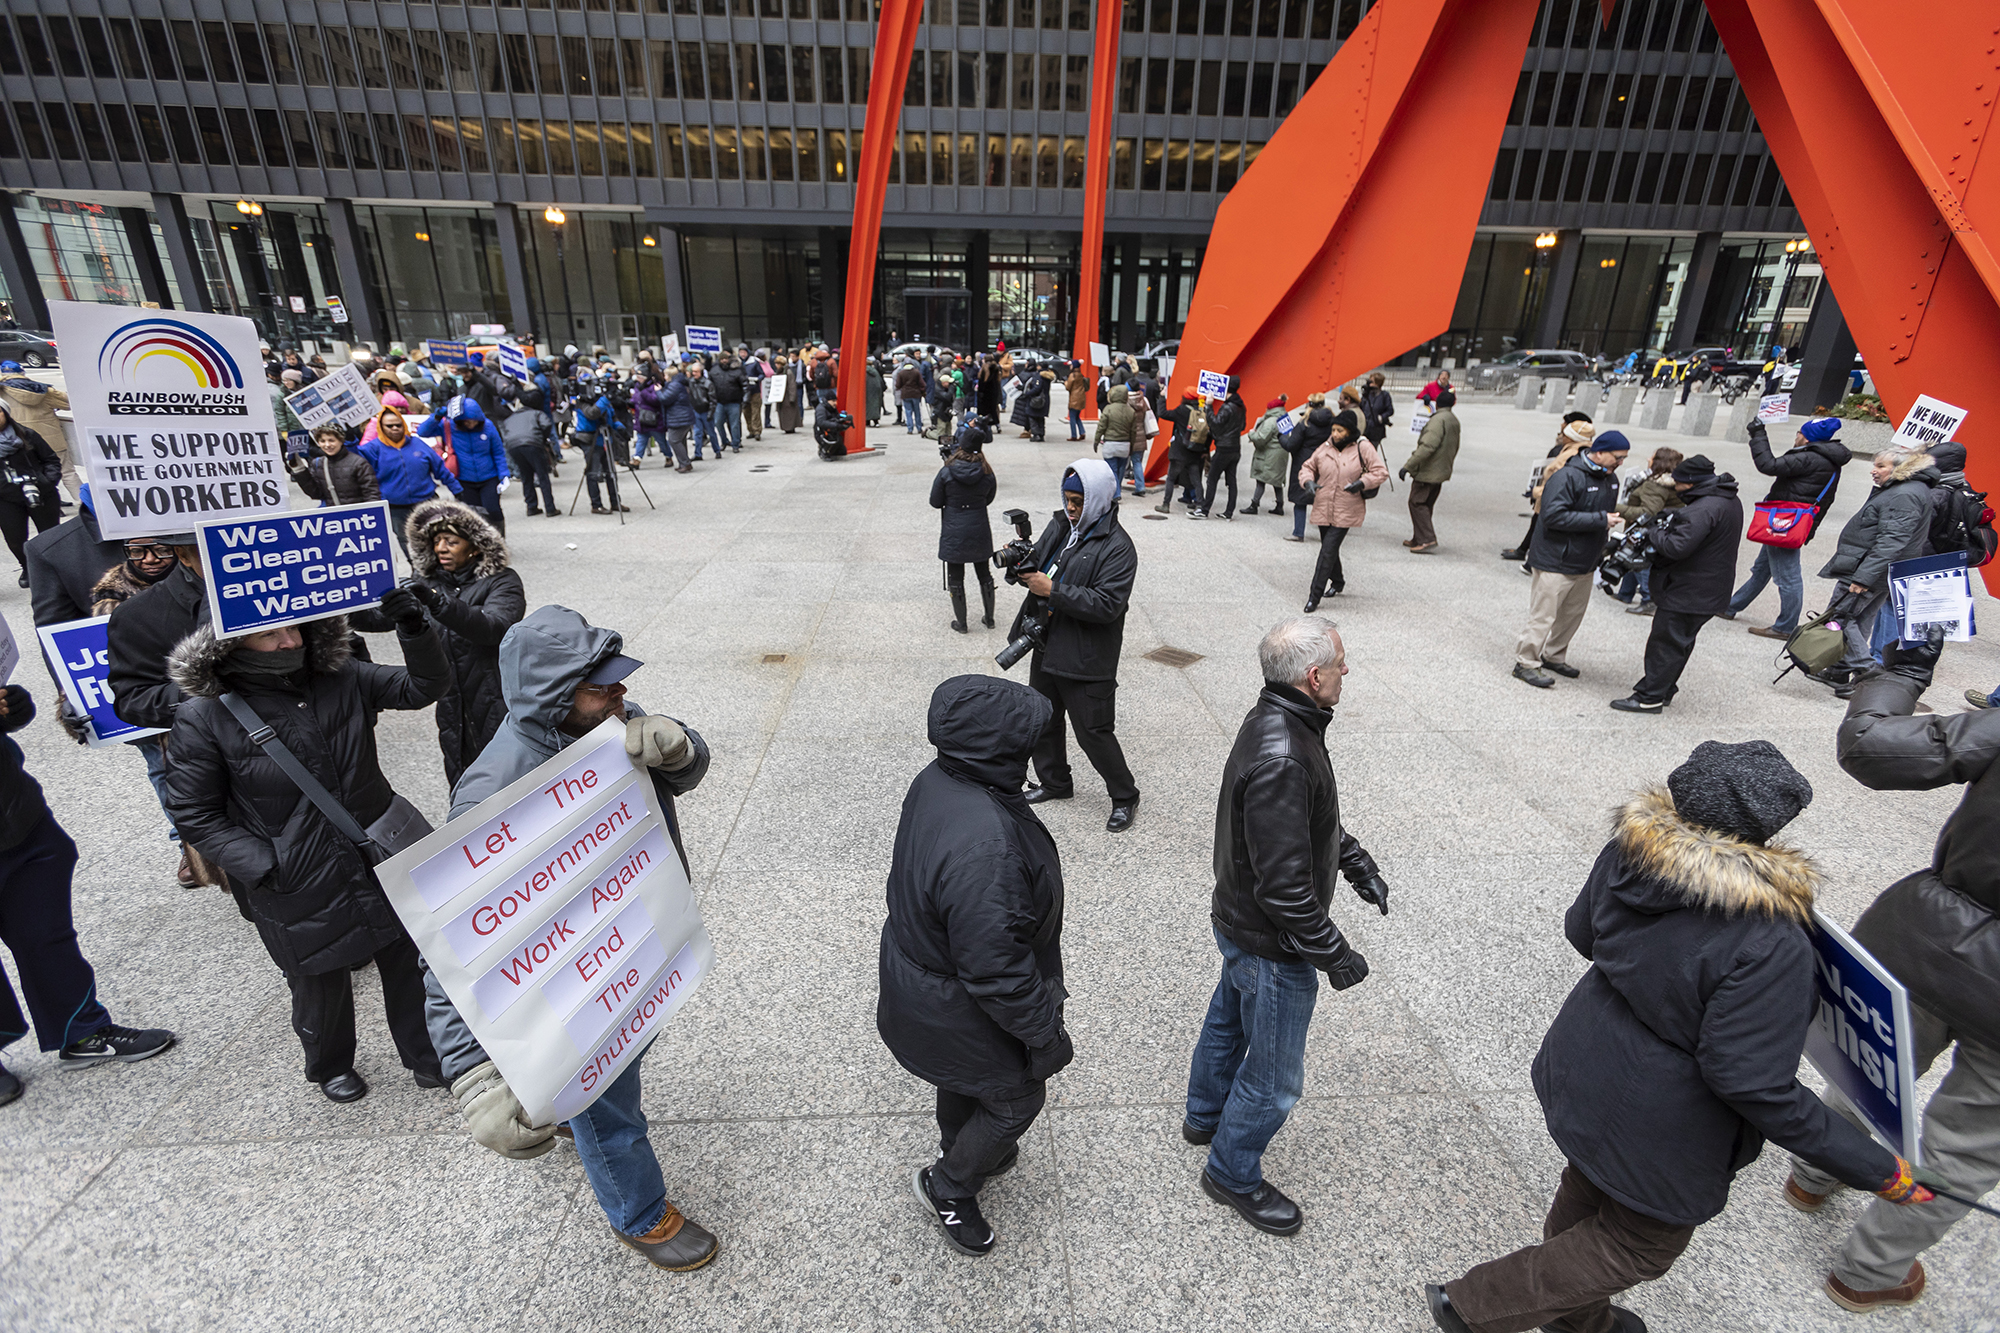 Despite the frigid temperatures, several dozen federal workers and labor leaders rallied to demand an end to the government shutdown. They said they will rally in downtown Chicago's Federal Plaza every Thursday at noon until the shutdown ends. (Manuel Martinez/WBEZ)